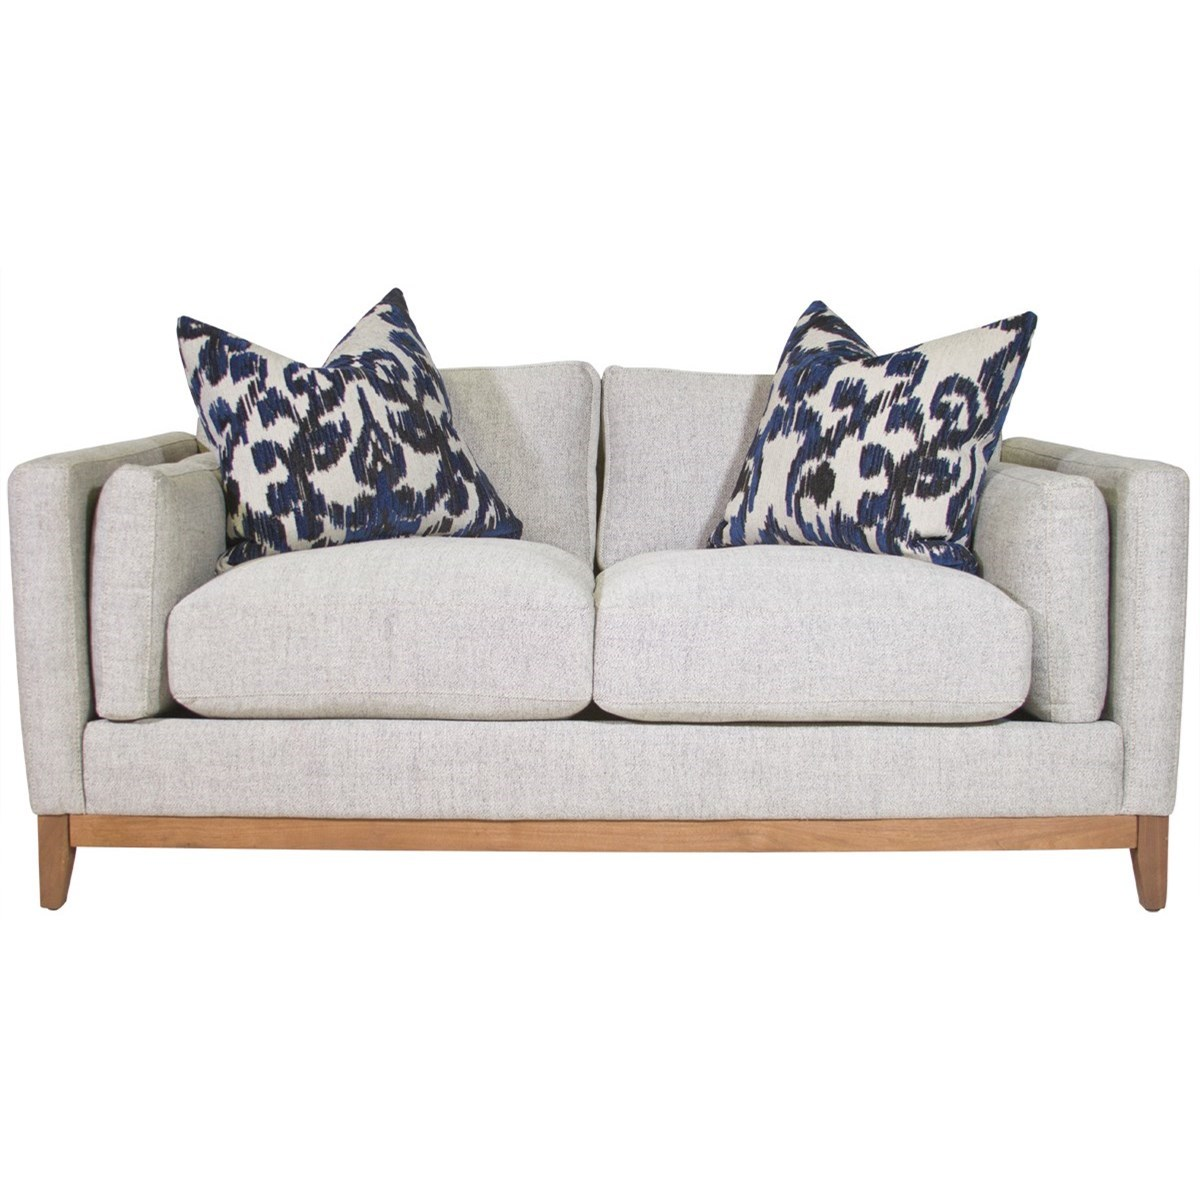 Jonathan Louis Kelsey Condo Sofa - Item Number: 34760-Deauville Stone